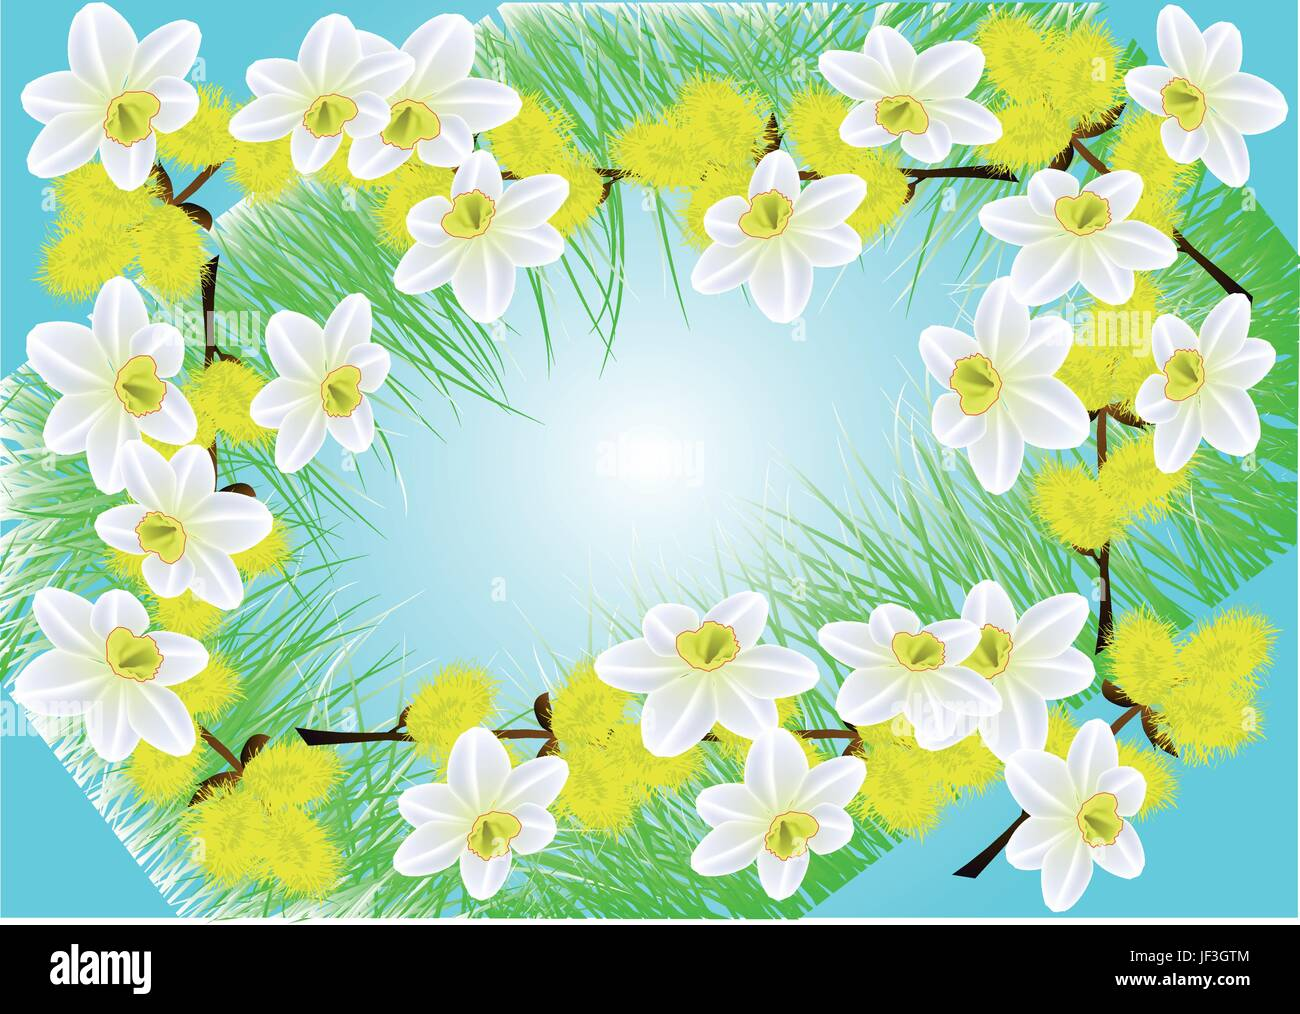 leaf, flower, plant, flowers, summer, summerly, spring, illustration, petal, - Stock Vector